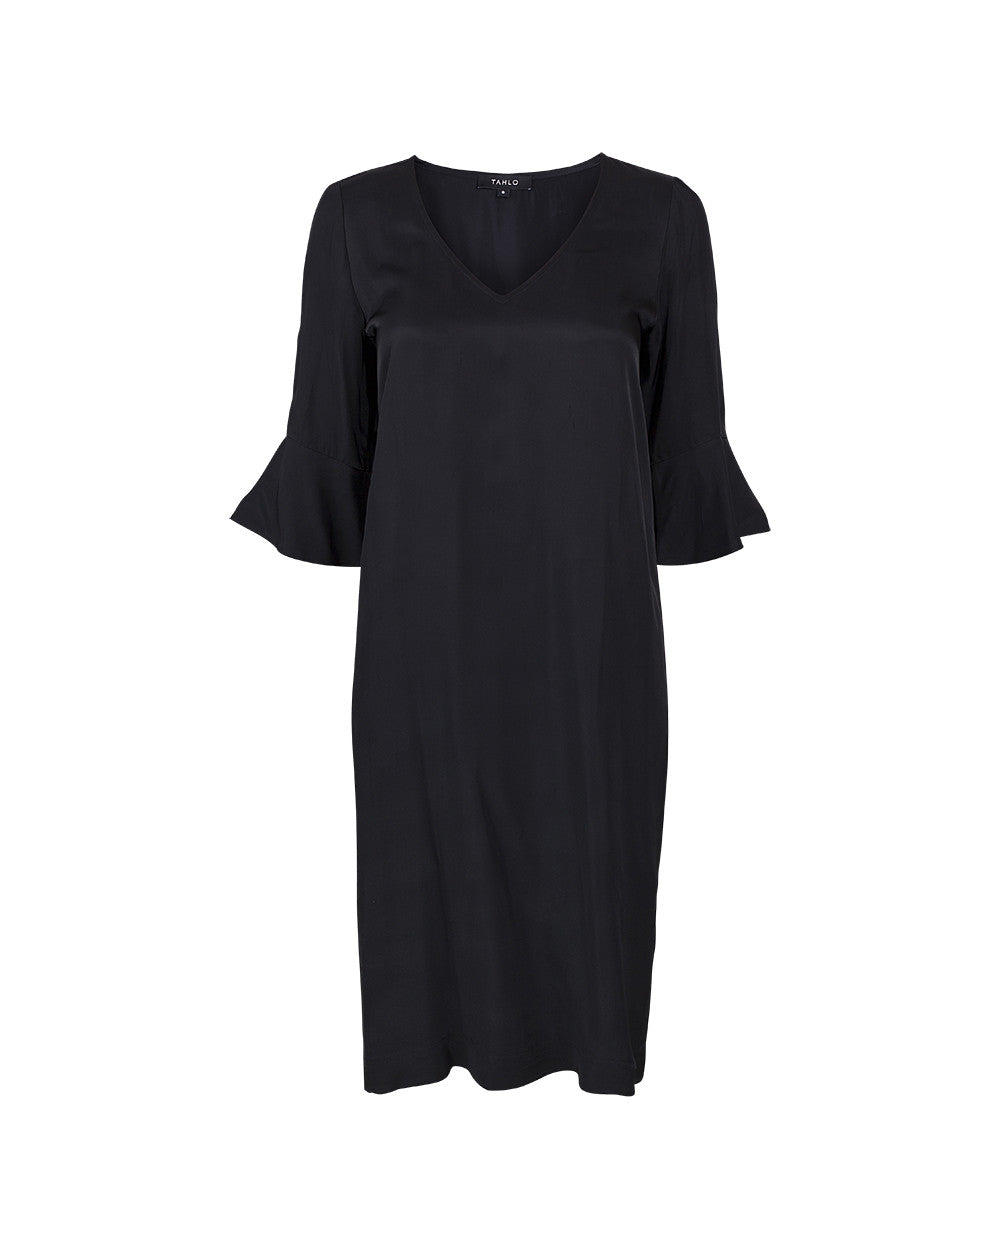 V-neck shift dress with trumpet sleeves in black by Tahlo. Customise this dress length, sleeves and neckline.